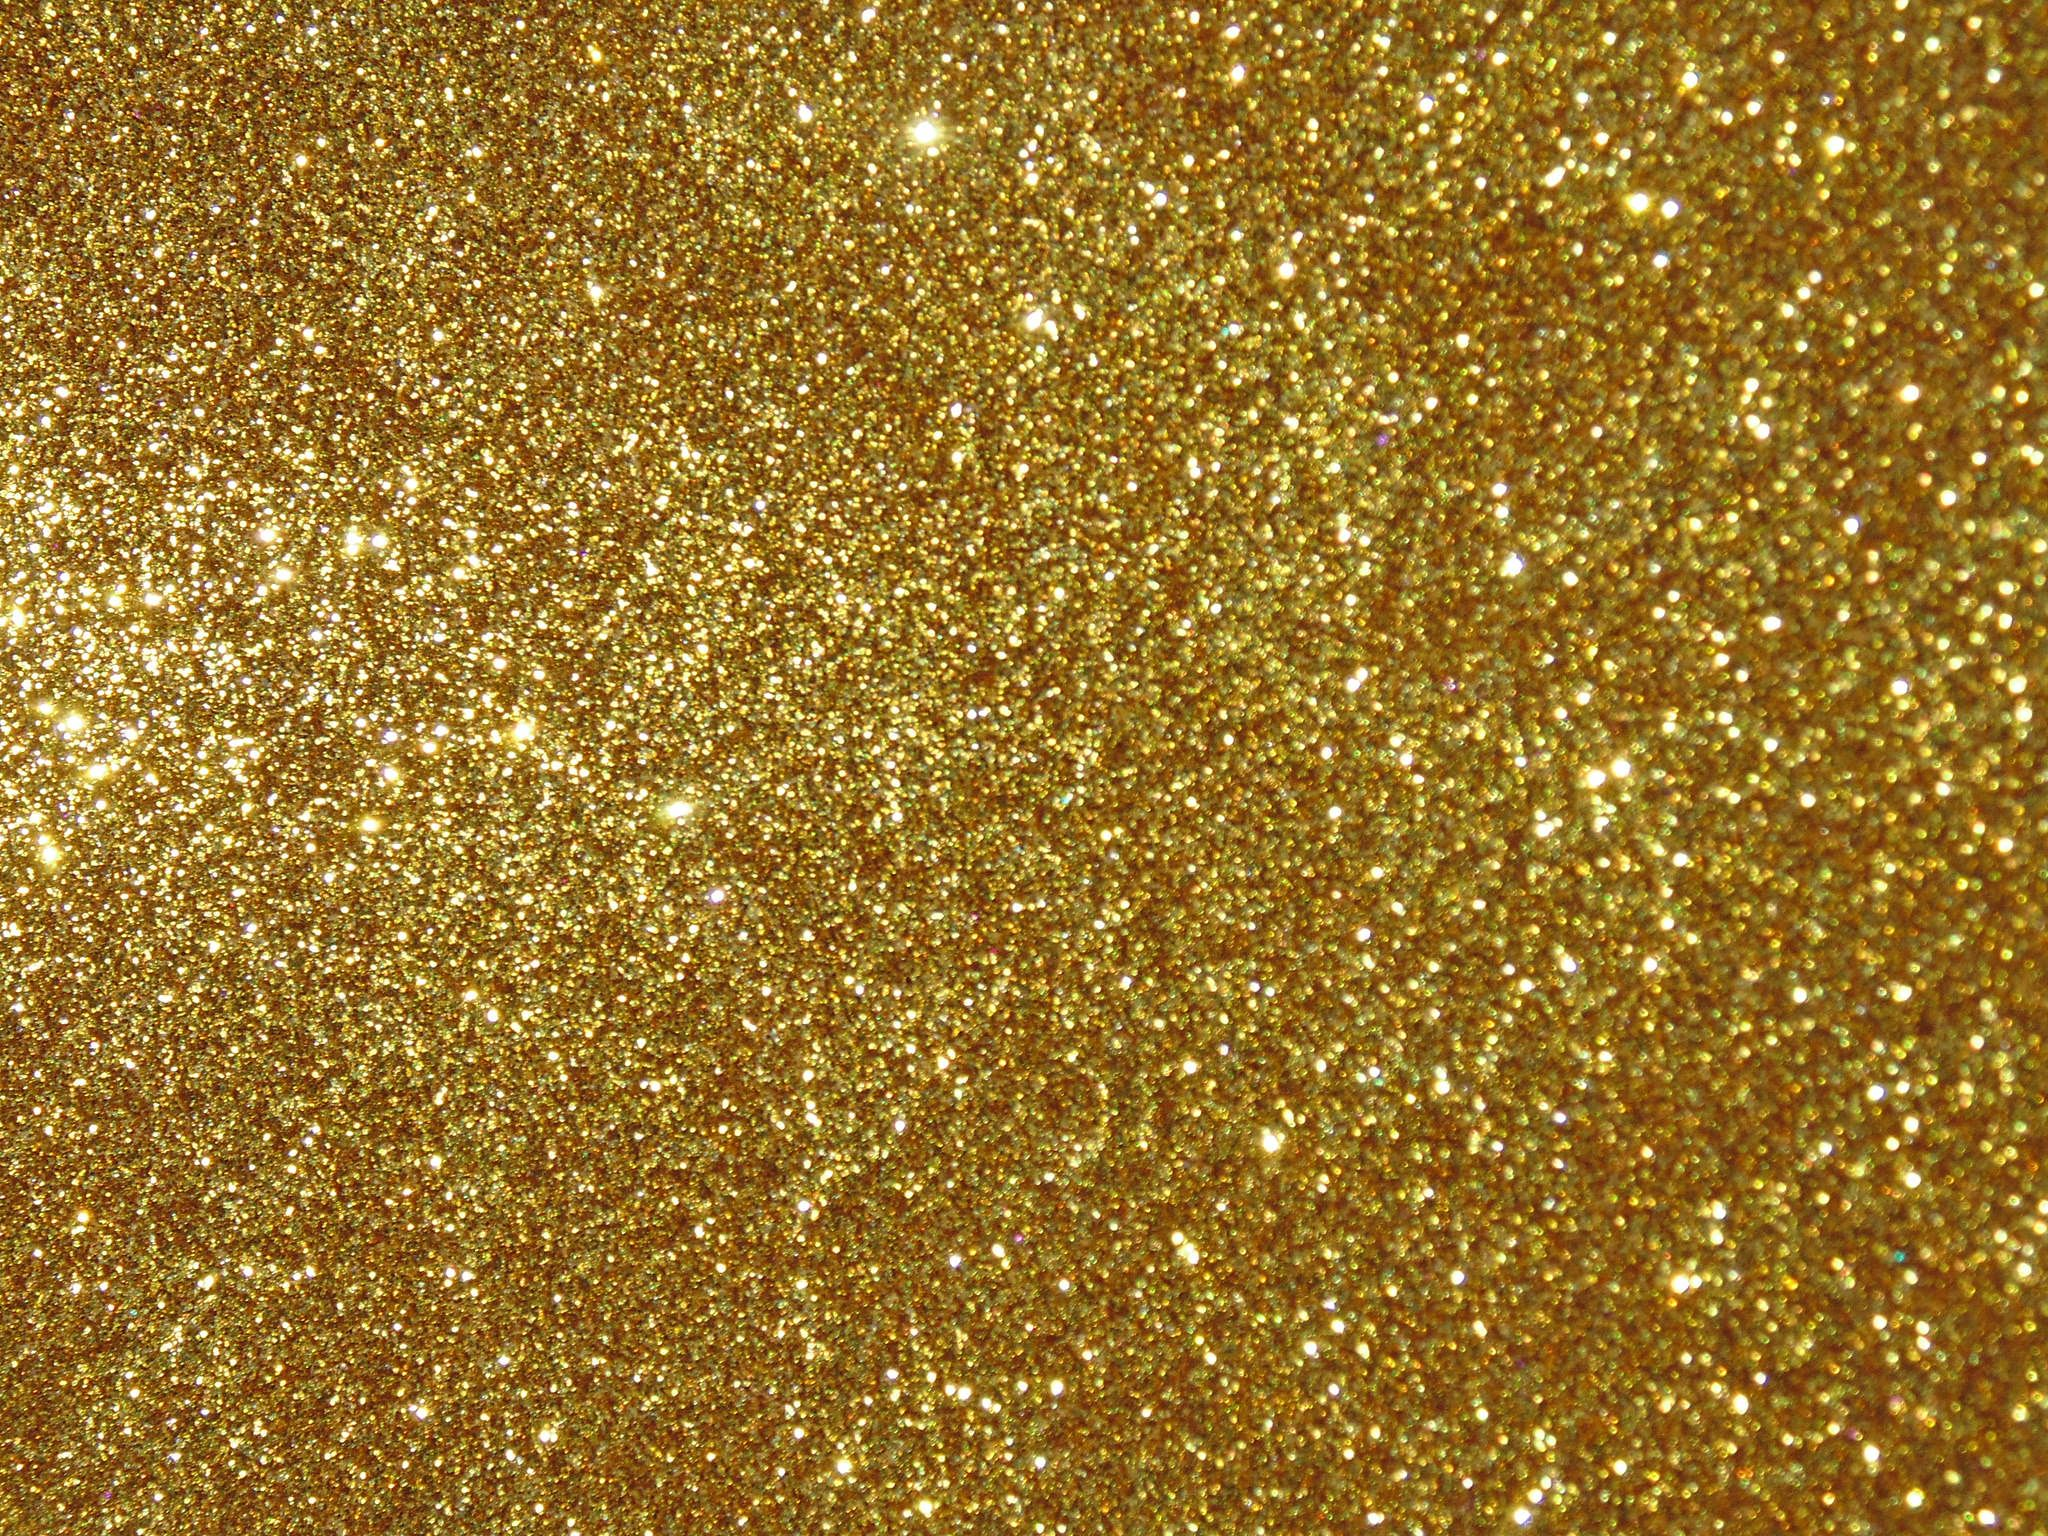 Gold glitter wallpaper hd hd wallpapers backgrounds images for Gold wallpaper for walls